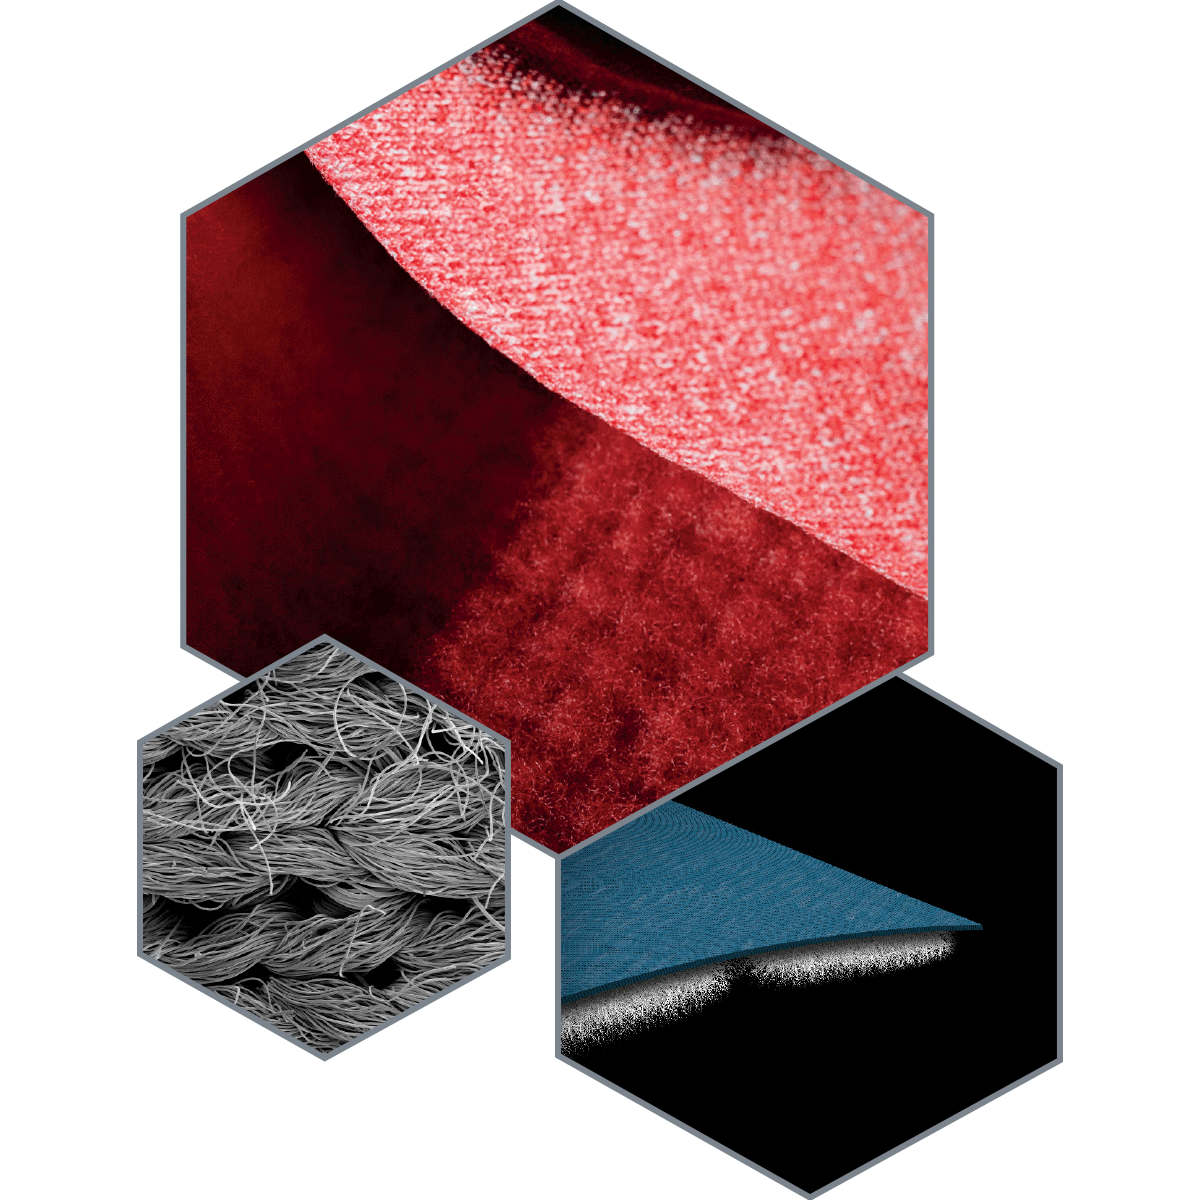 Powerwool Hero Hex 1200X1200